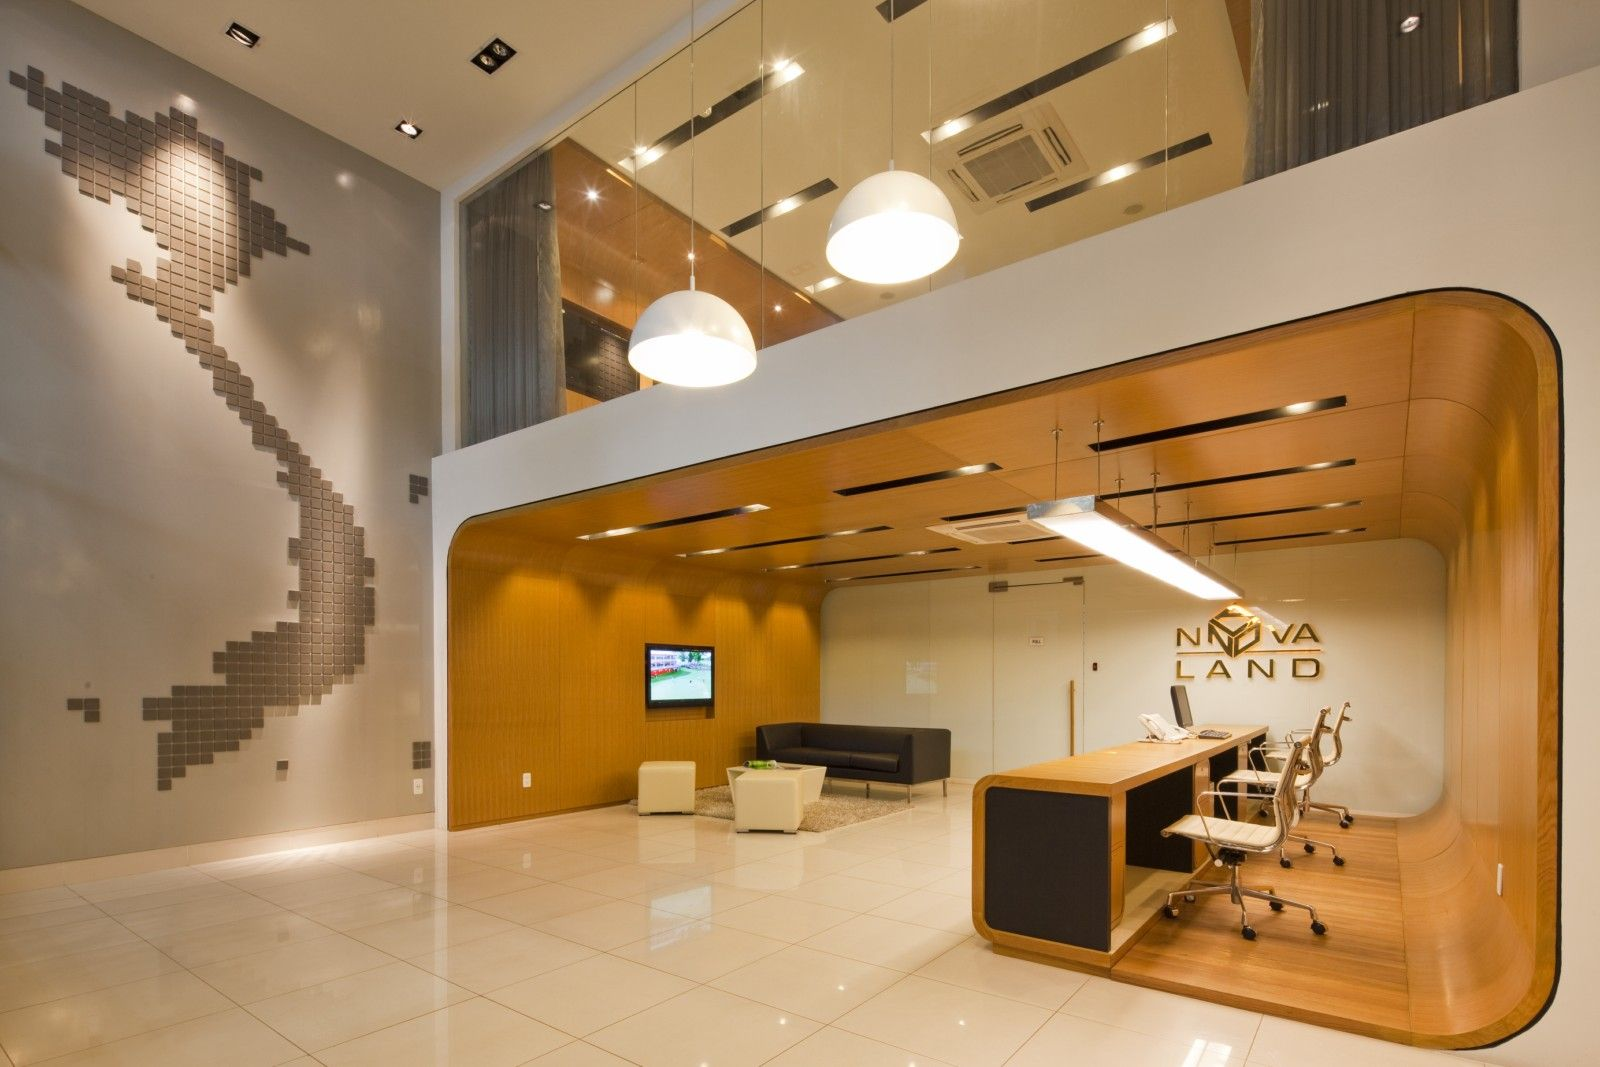 Ride the wave reception design in a #workplace work pinterest